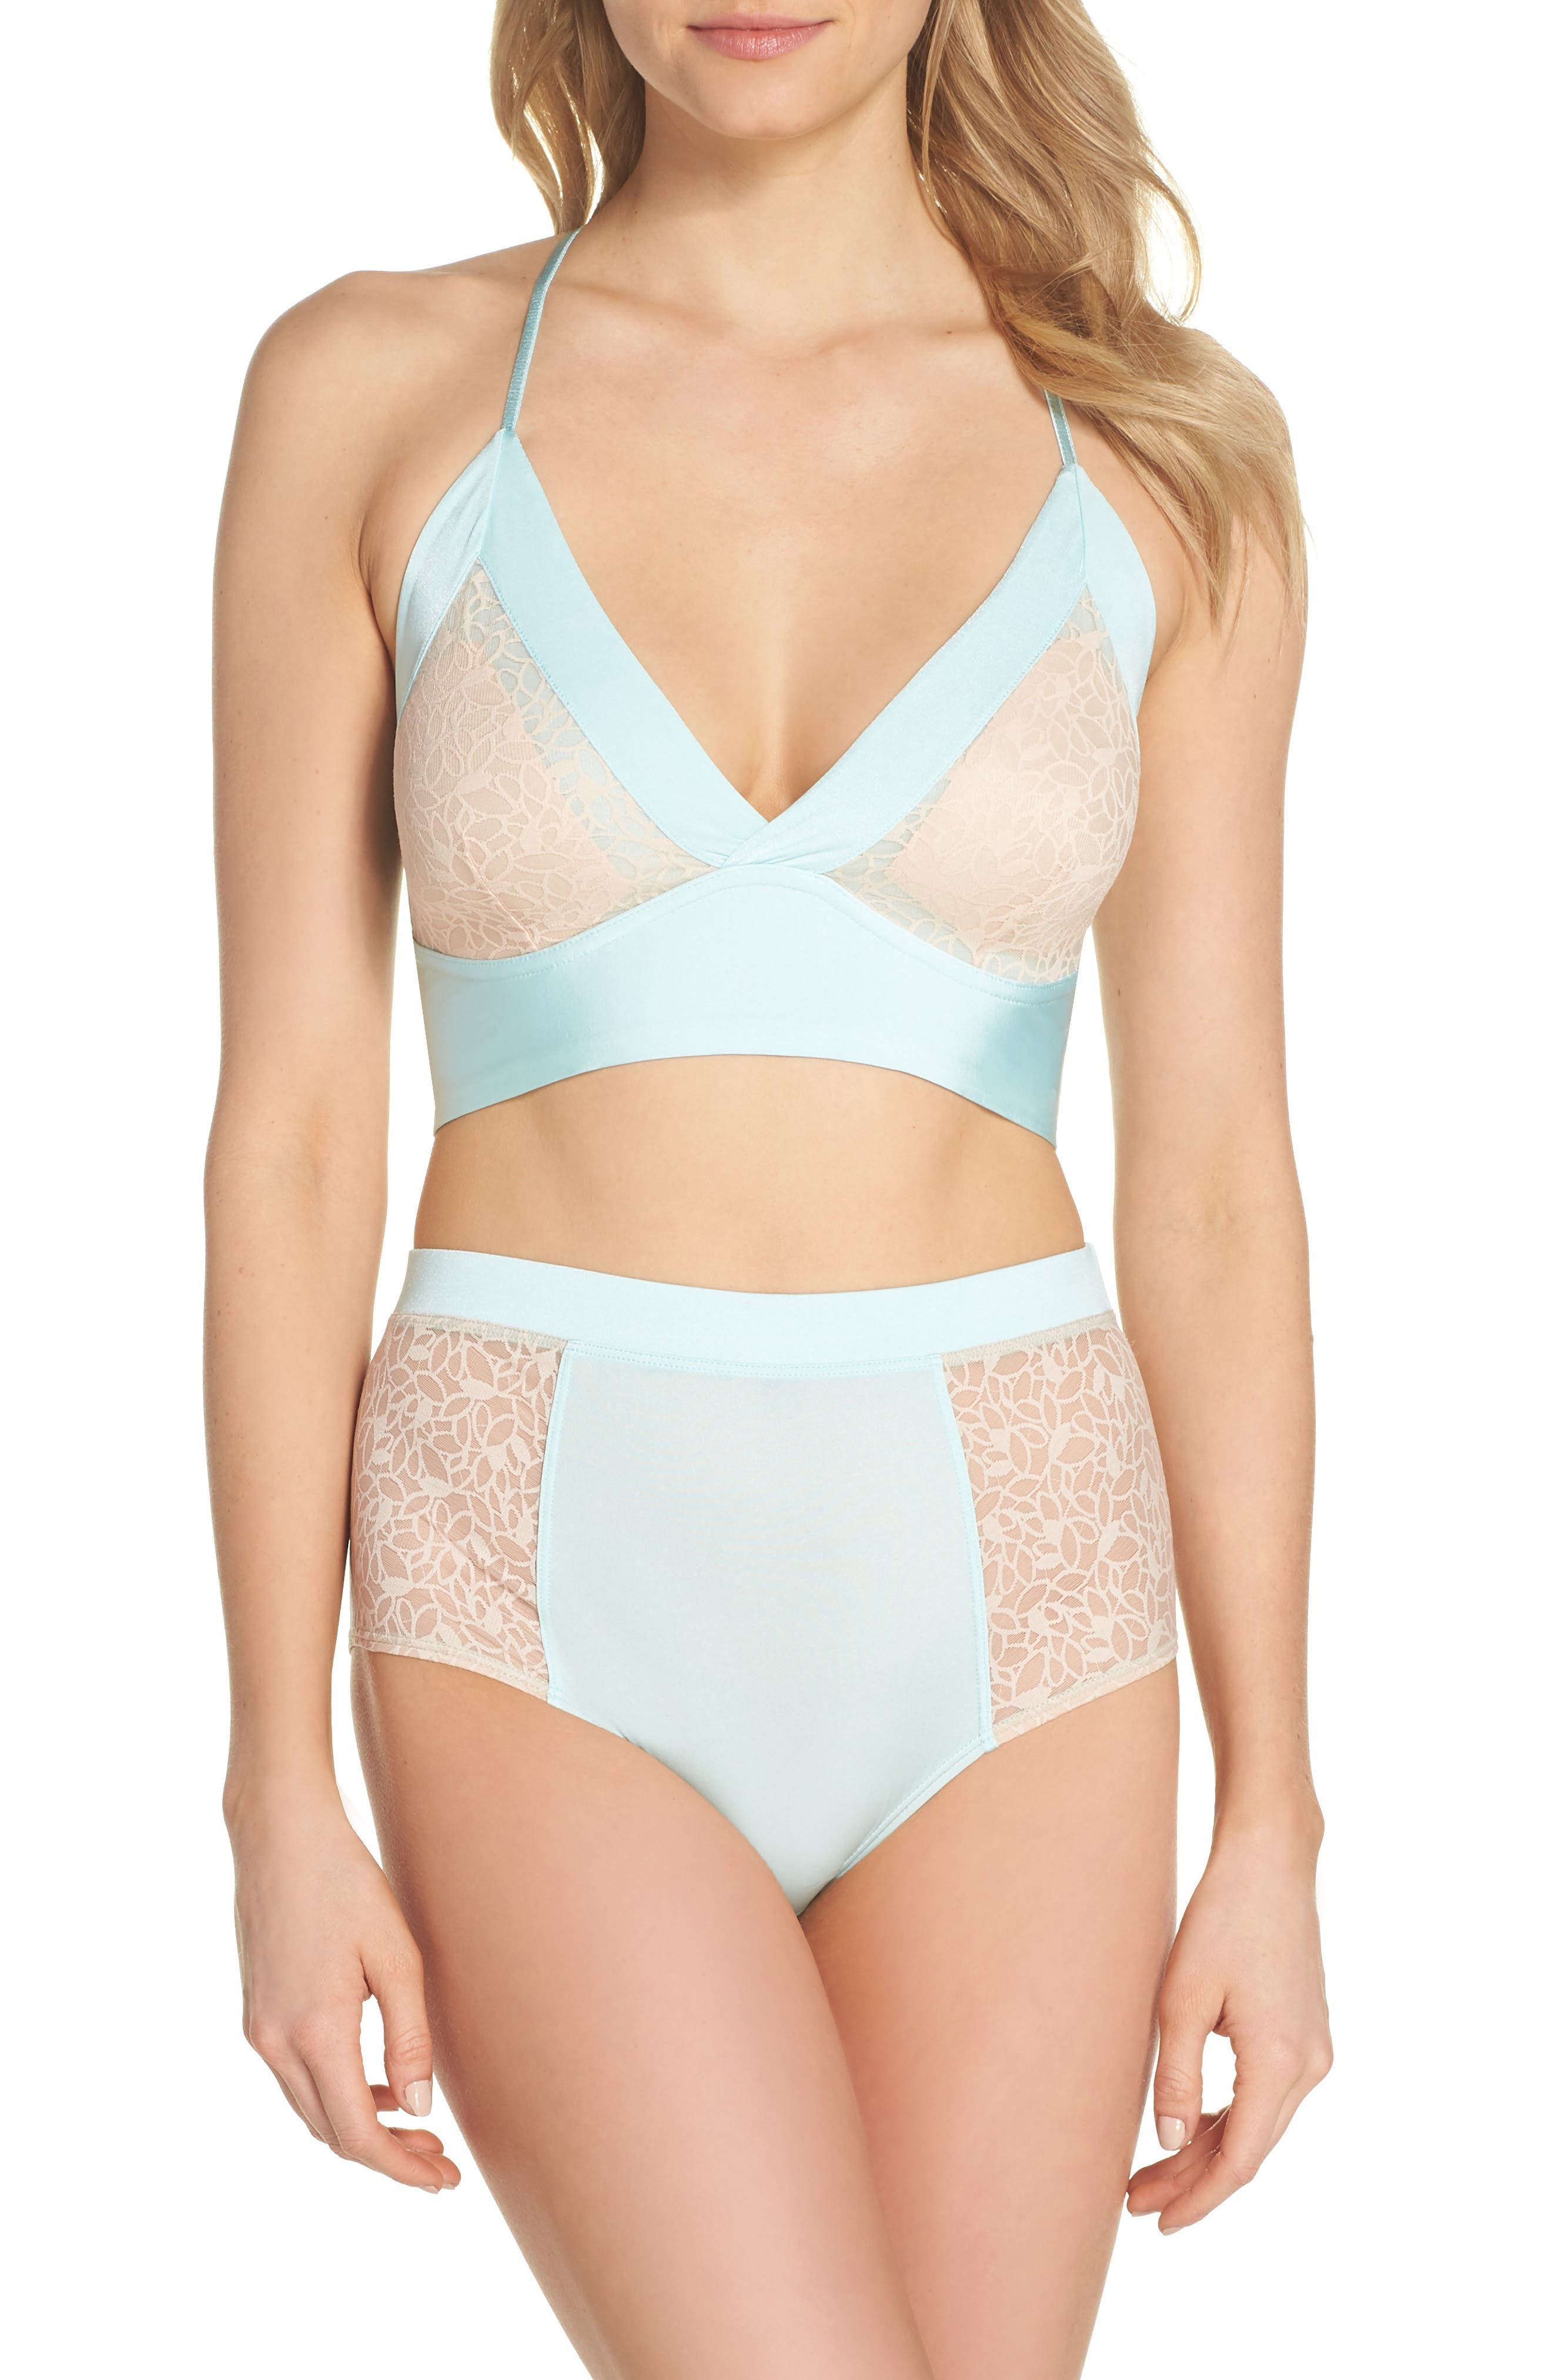 Satin Lace Wireless Bralette,                             Alternate thumbnail 4, color,                             Blue Plume/ Pink Dust